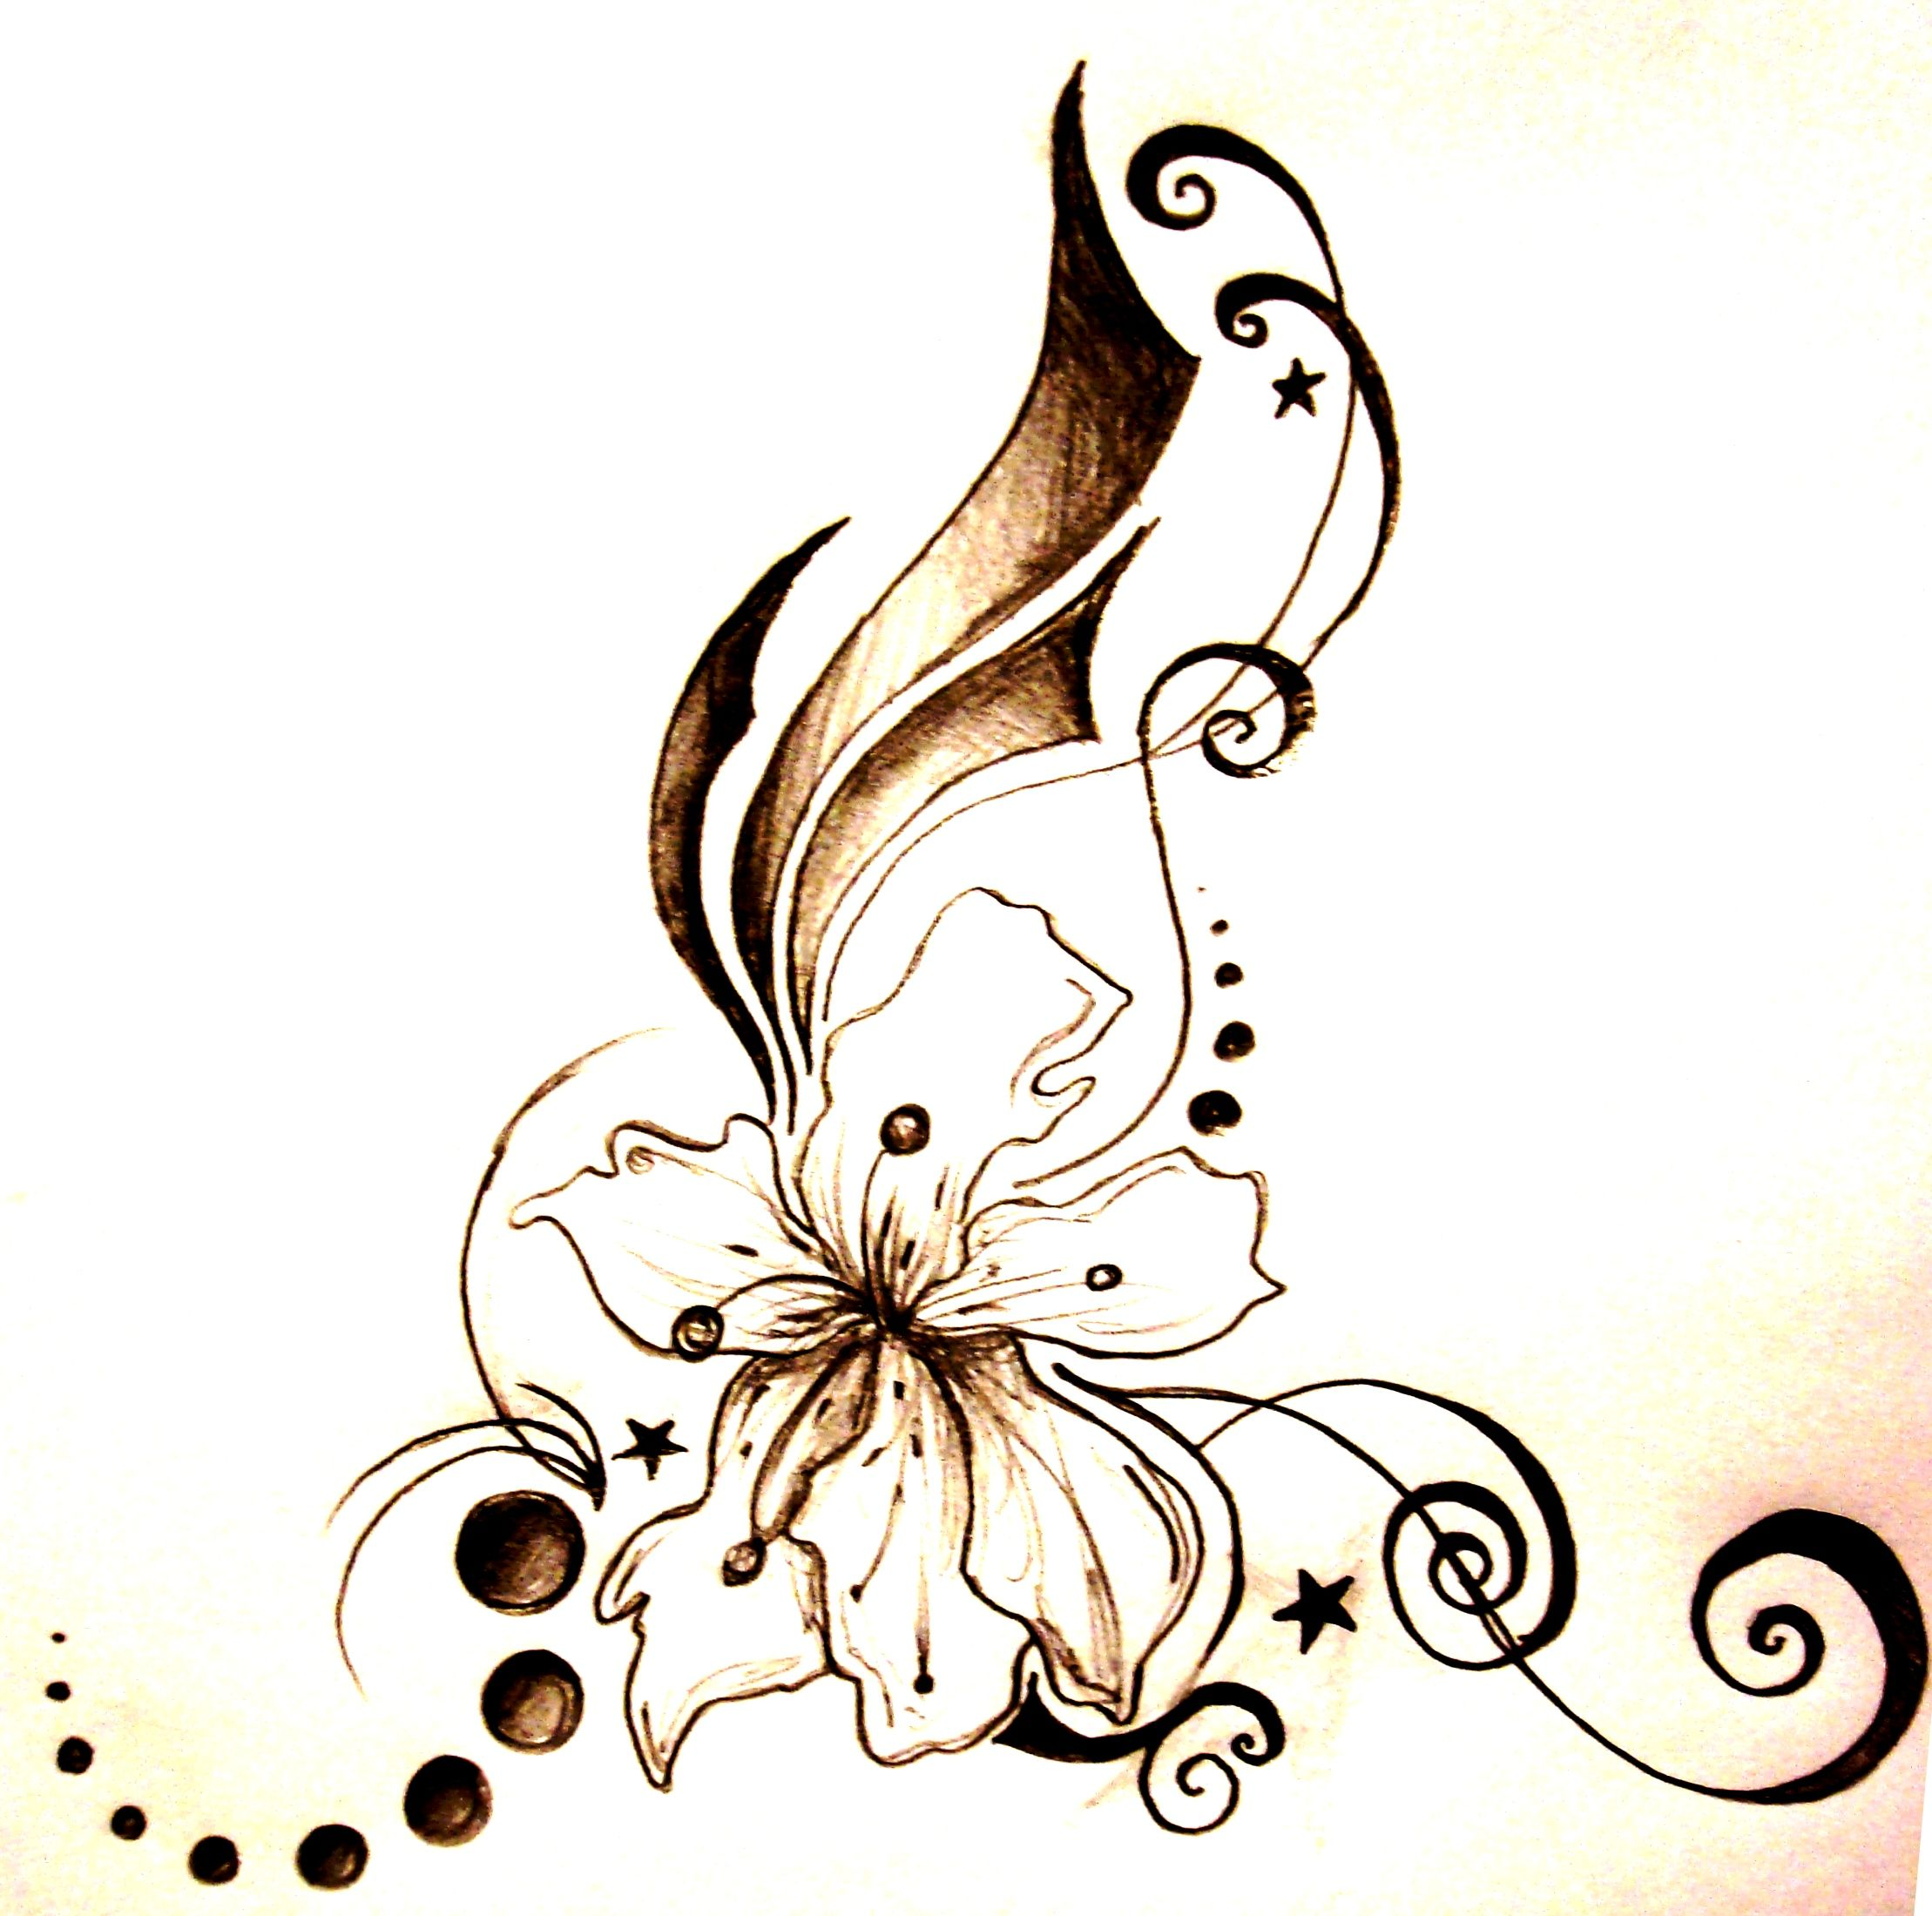 Lily Back Flower Tattoo: It Is Official This Is My Next Tattoo.... I Don't Know